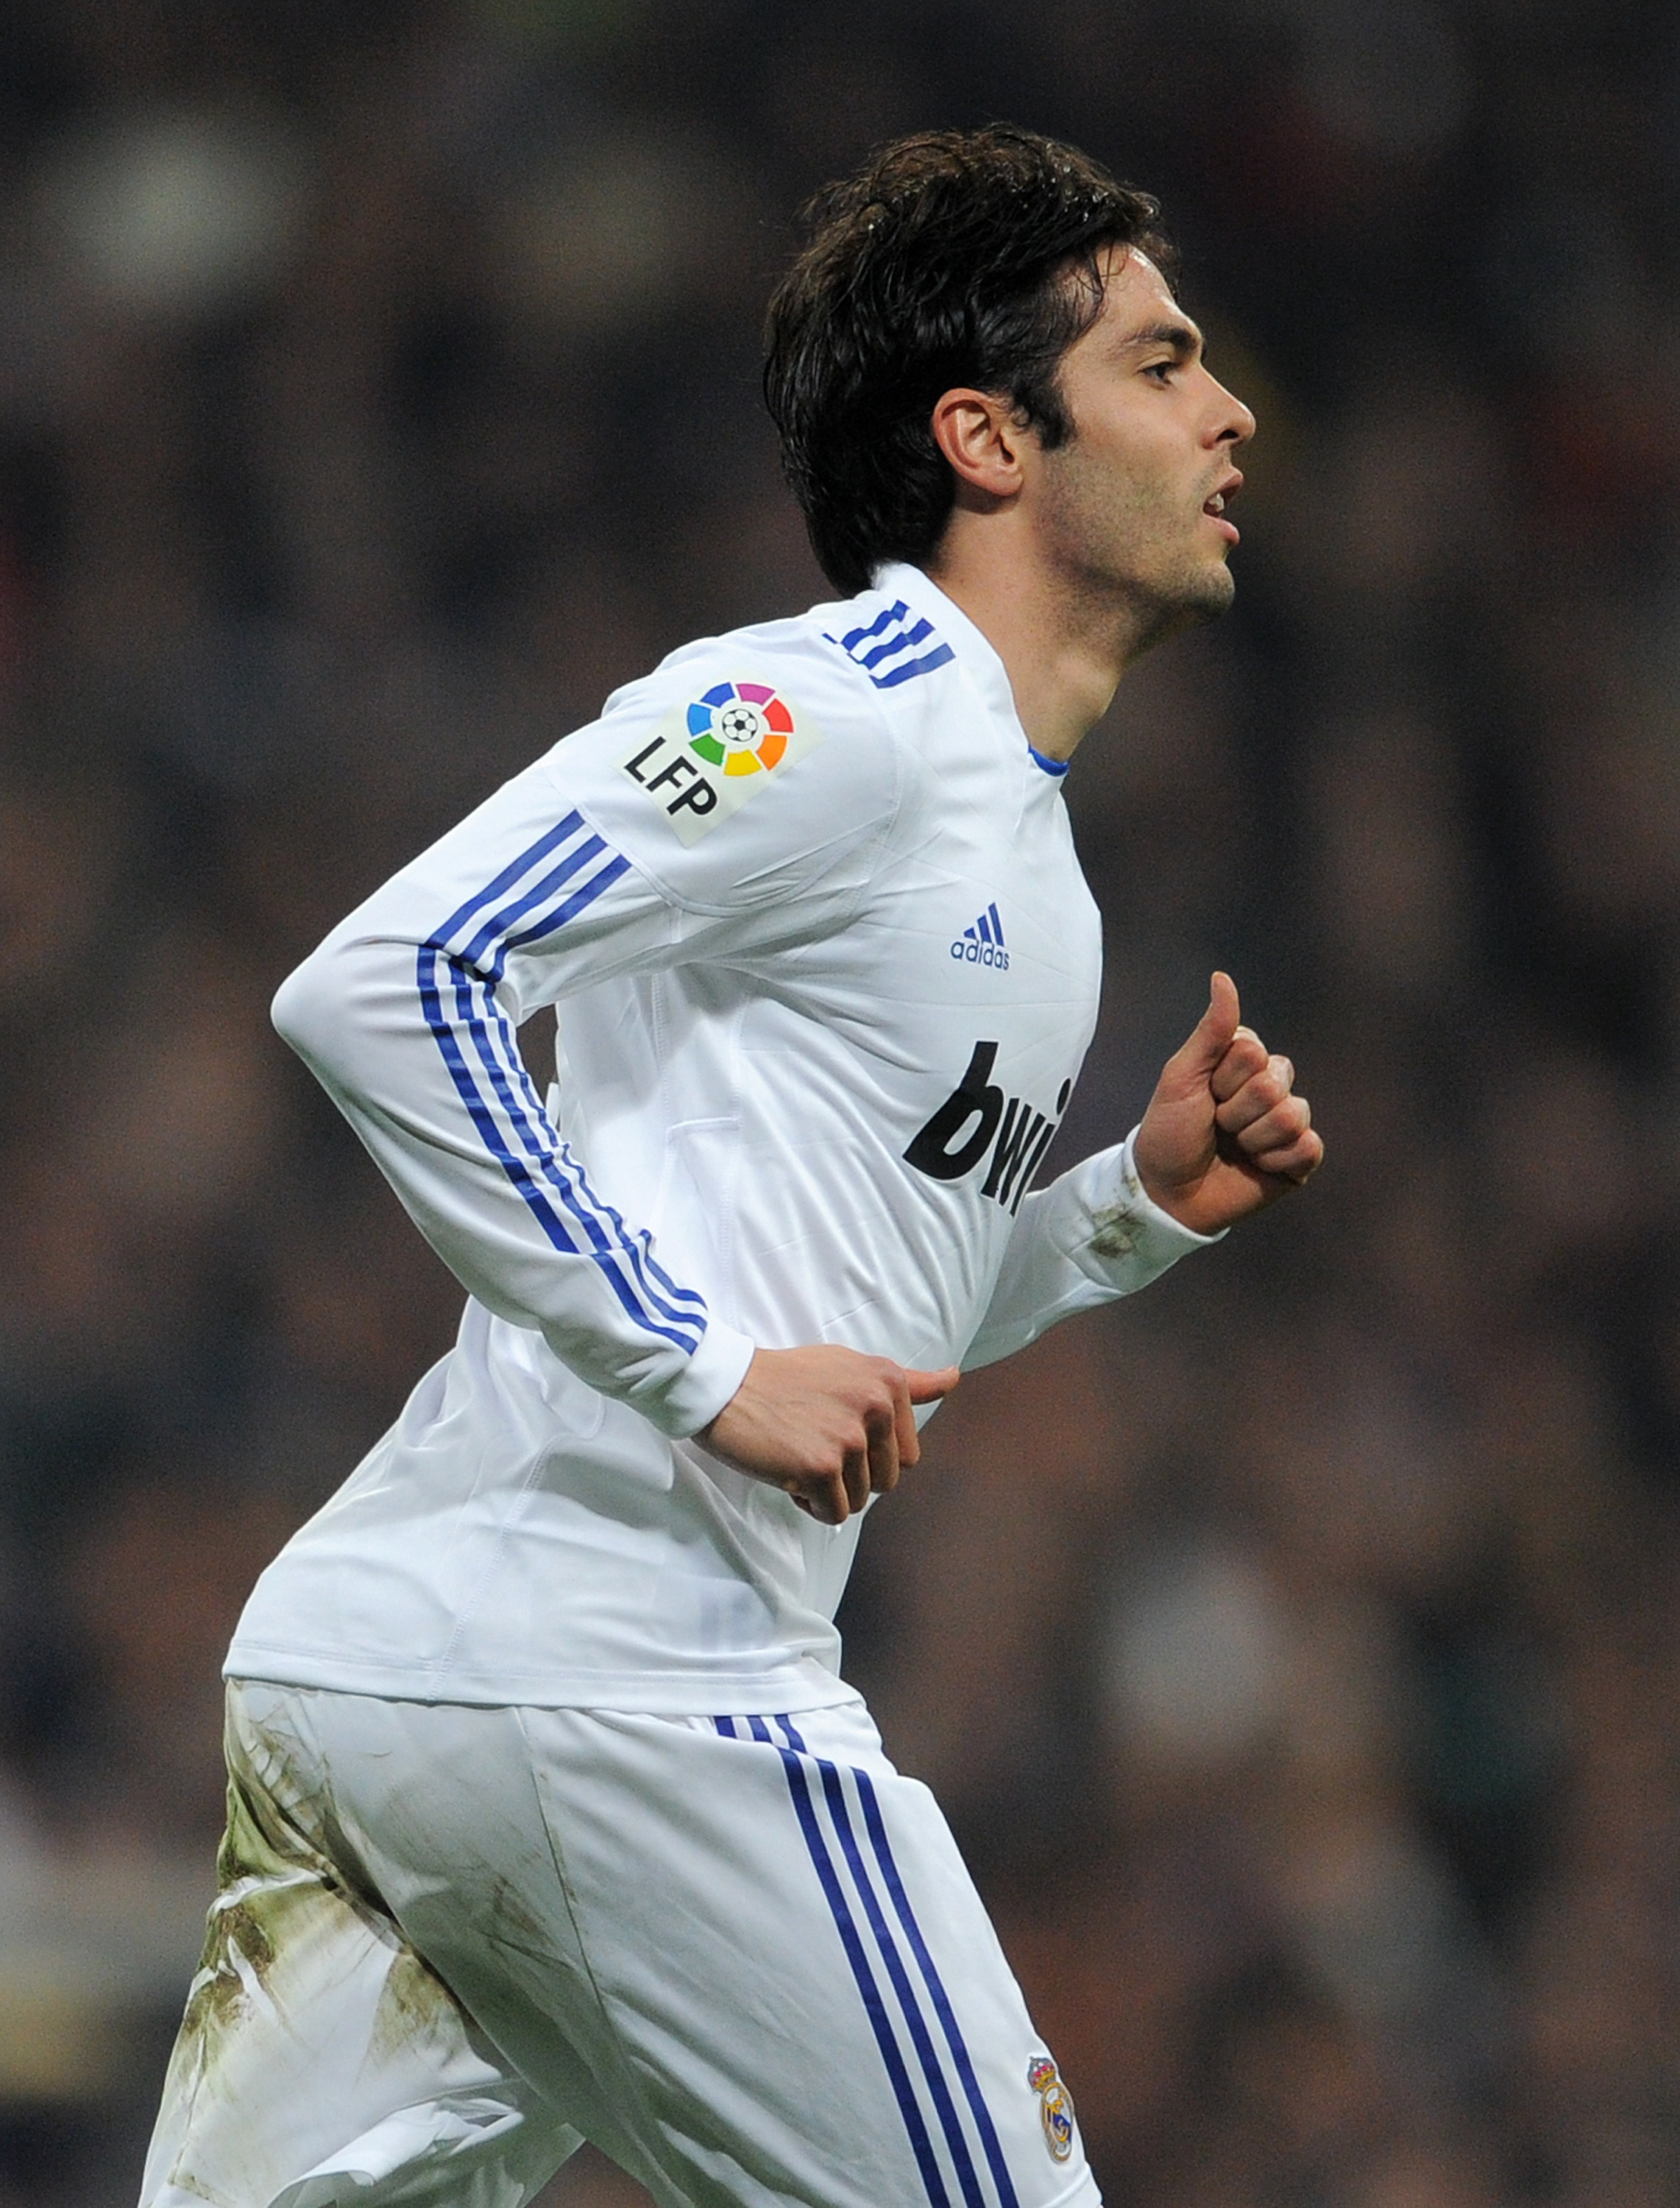 MADRID, SPAIN - JANUARY 13:  Kaka of Real Madrid looks on during the quarter-final Copa del Rey first leg match between Real Madrid and Atletico Madrid at Estadio Santiago Bernabeu on January 13, 2011 in Madrid, Spain.  (Photo by Jasper Juinen/Getty Image